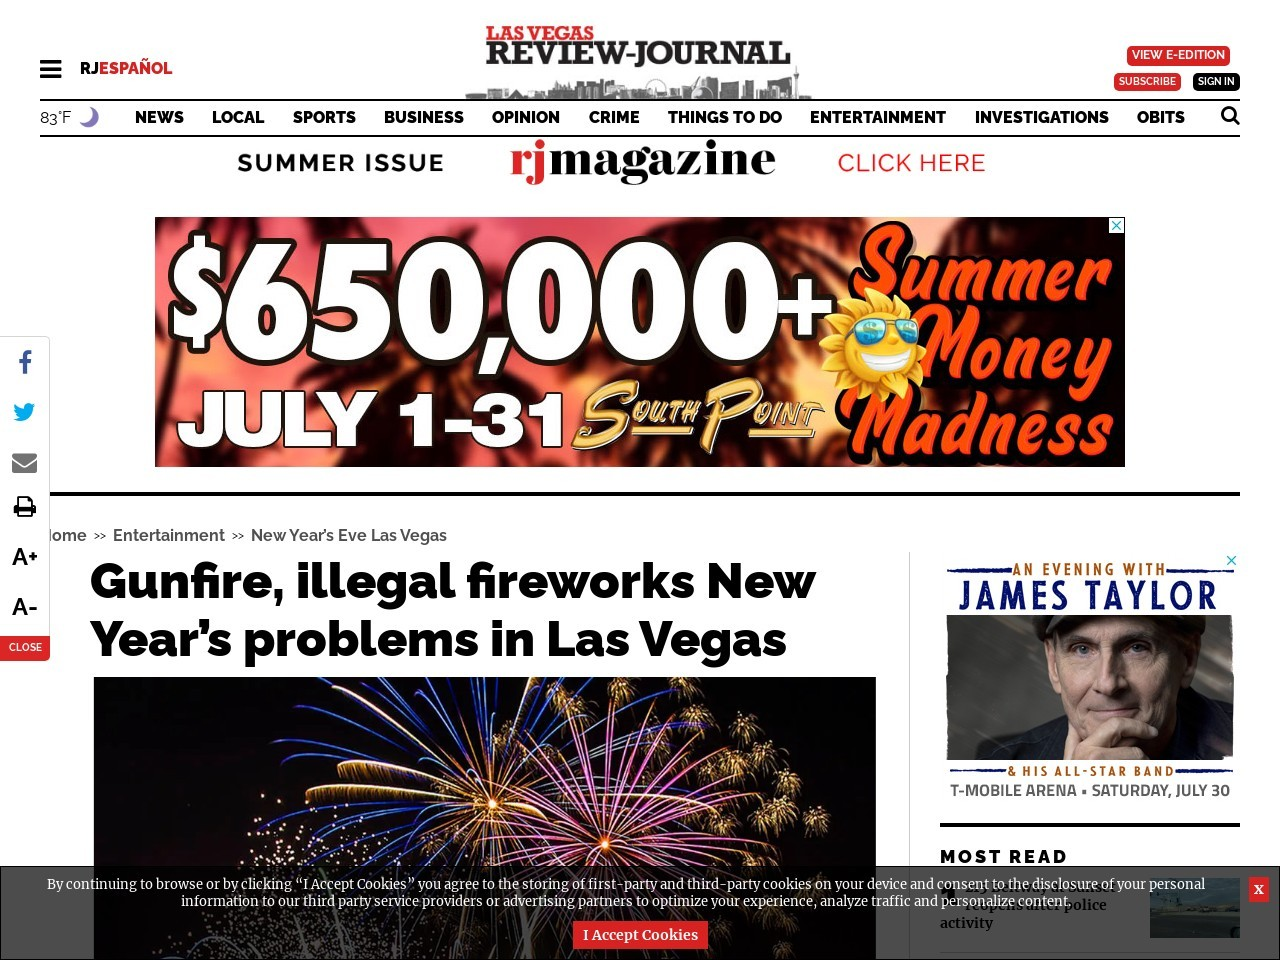 Gunfire, illegal fireworks New Year's problems in Las Vegas